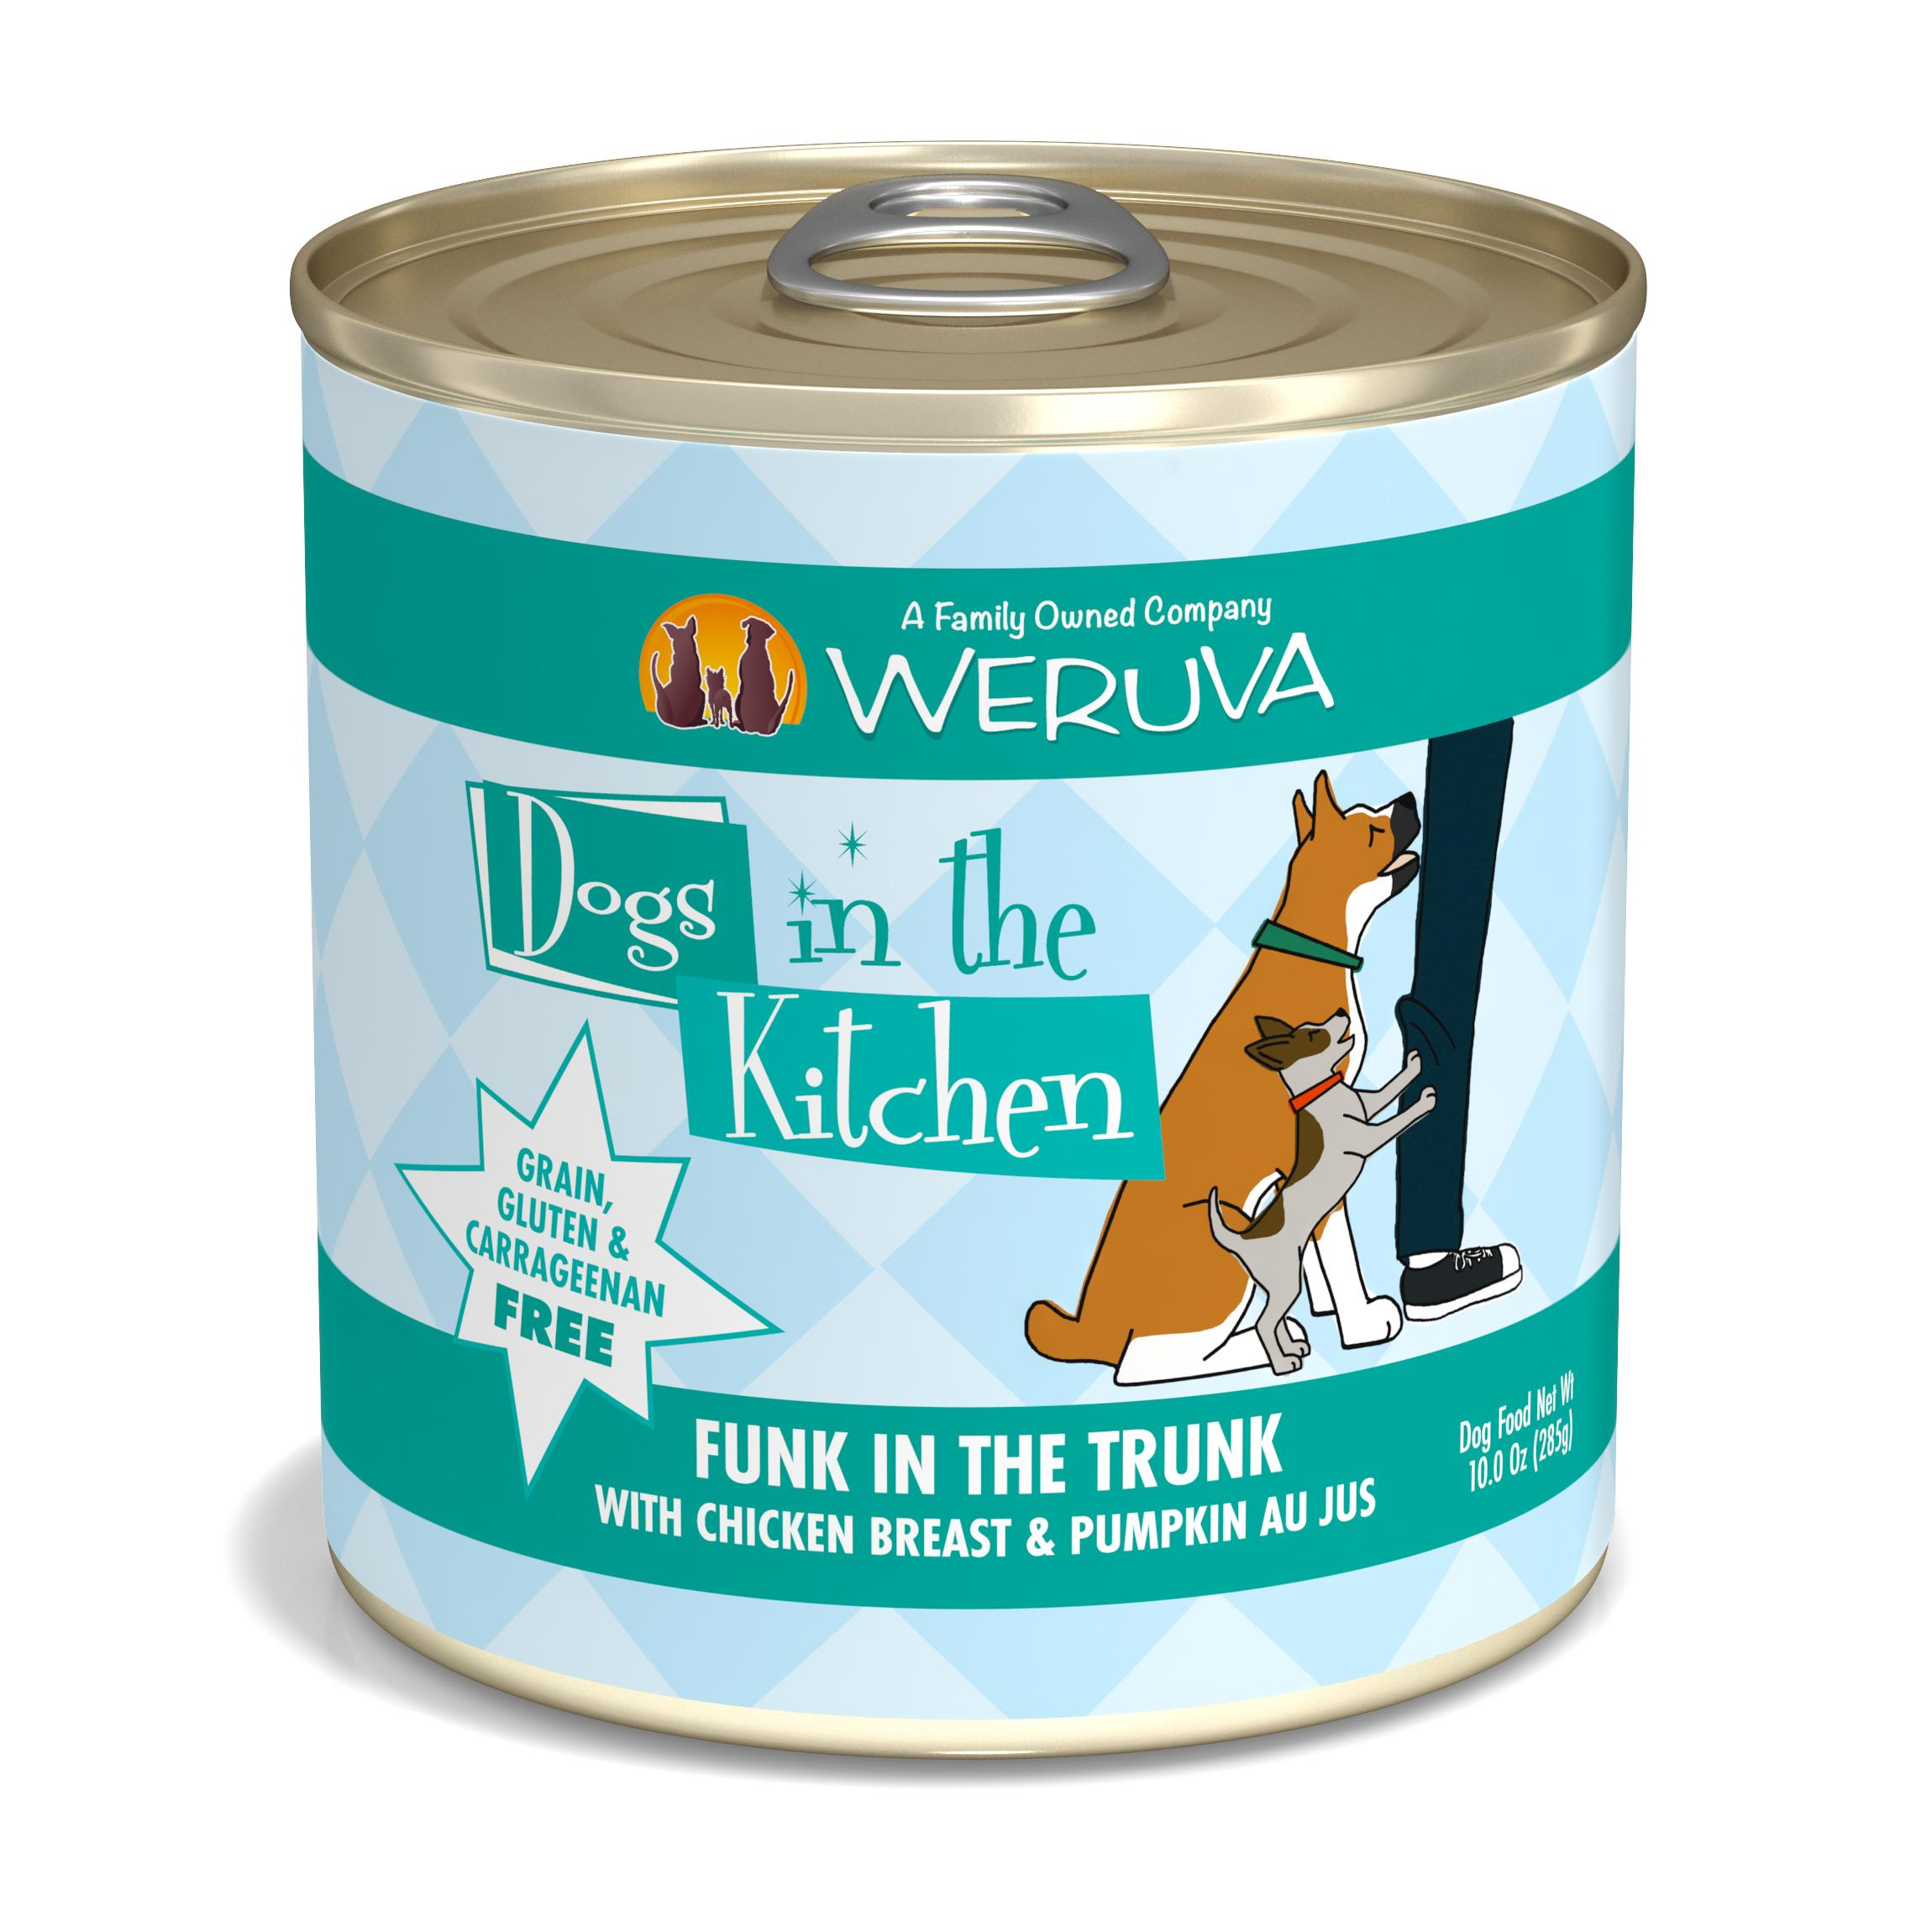 Weruva Dogs in the Kitchen Funk in the Trunk with Chicken Breast & Pumpkin Au Jus Grain-Free Wet Dog Food Image